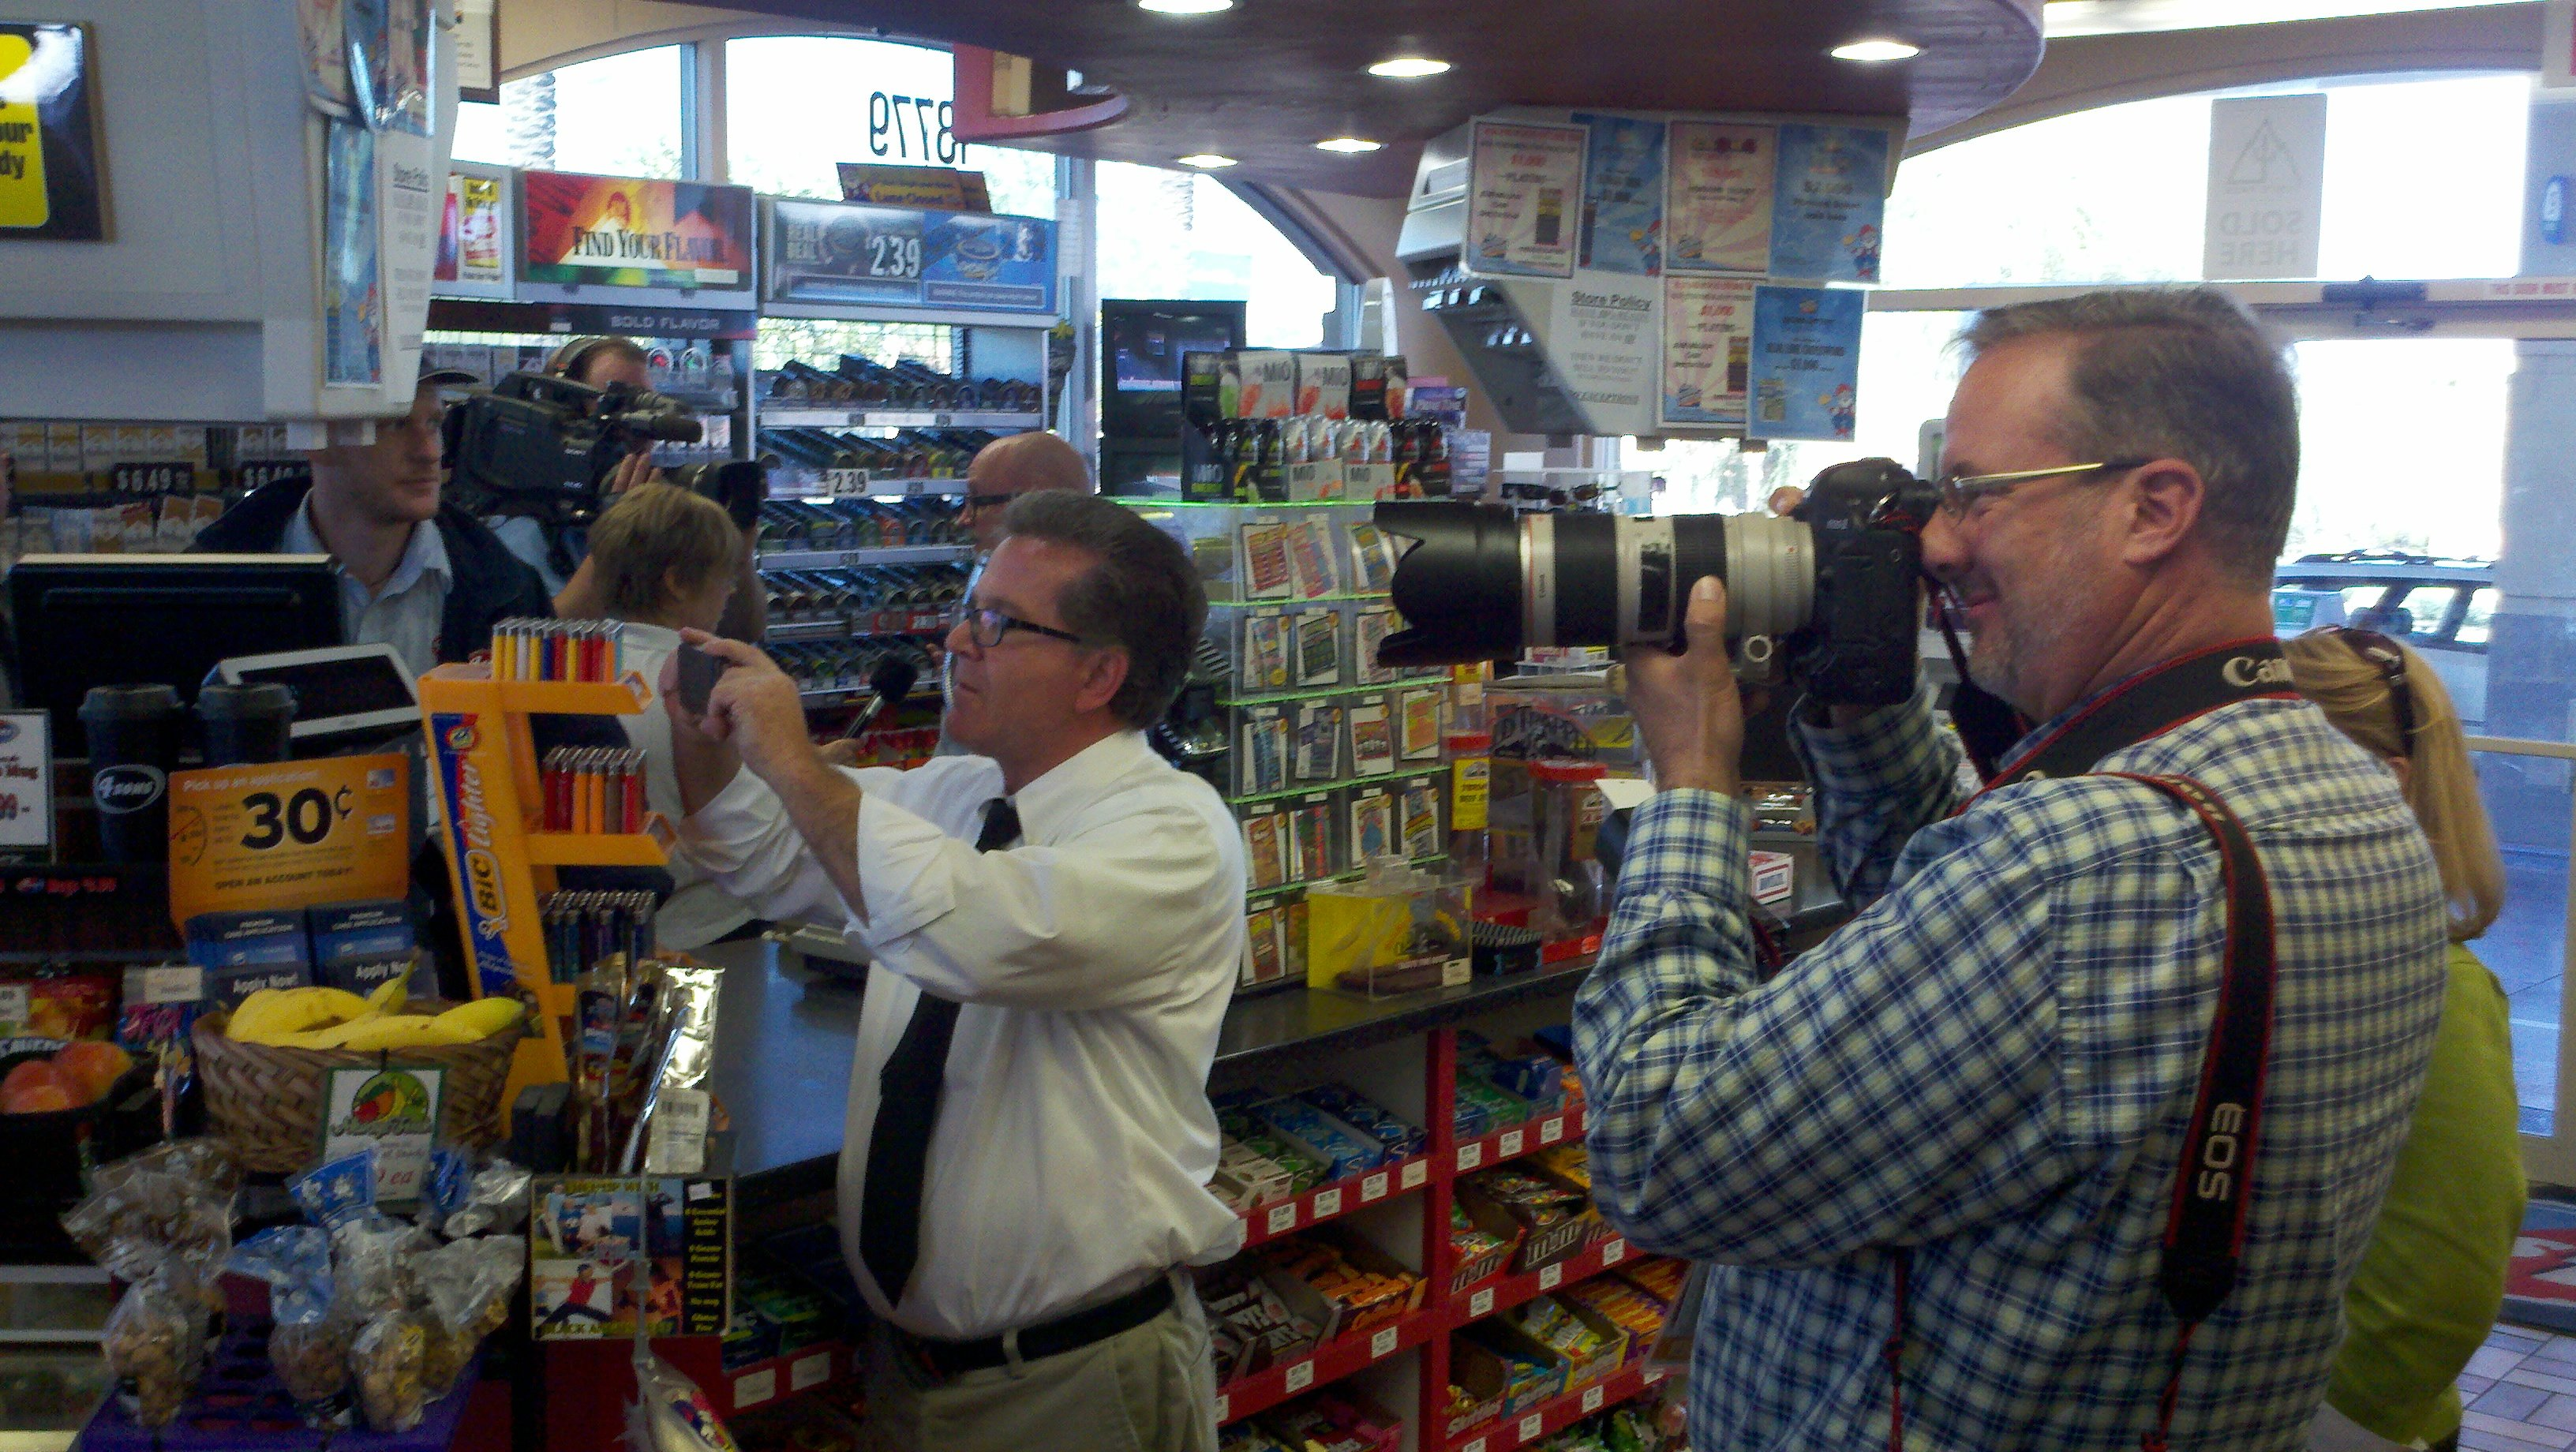 At 4 Sons Food Store at 13779 N. Fountain Hills Blvd. in Fountain Hills where the winning ticket was sold.